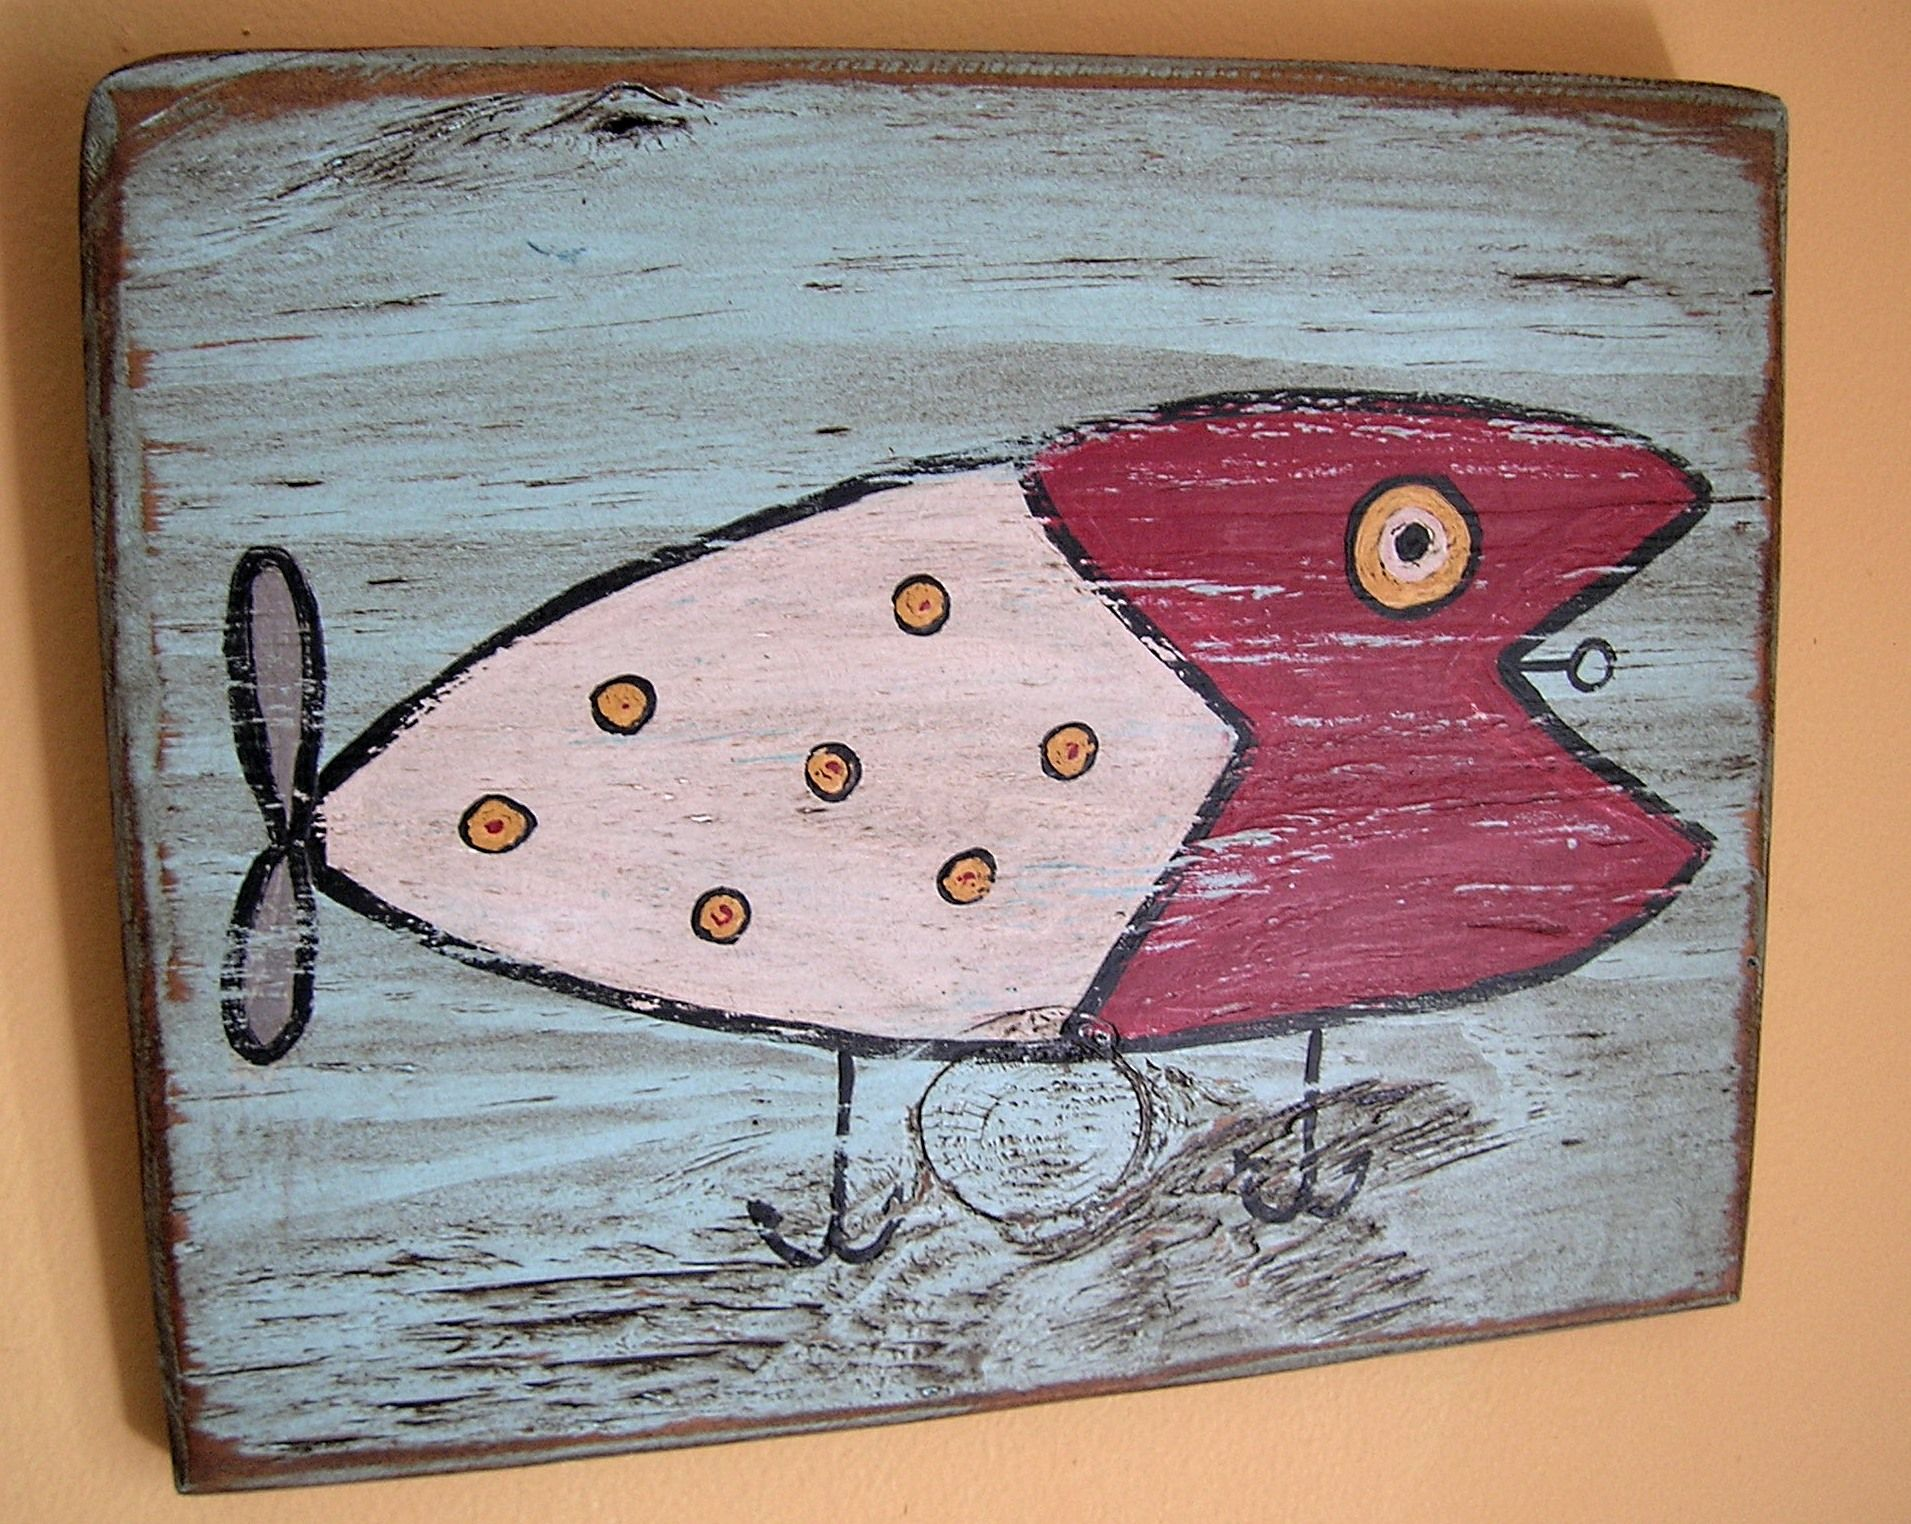 Fishing lure painting on wood cabin crafts painted wood